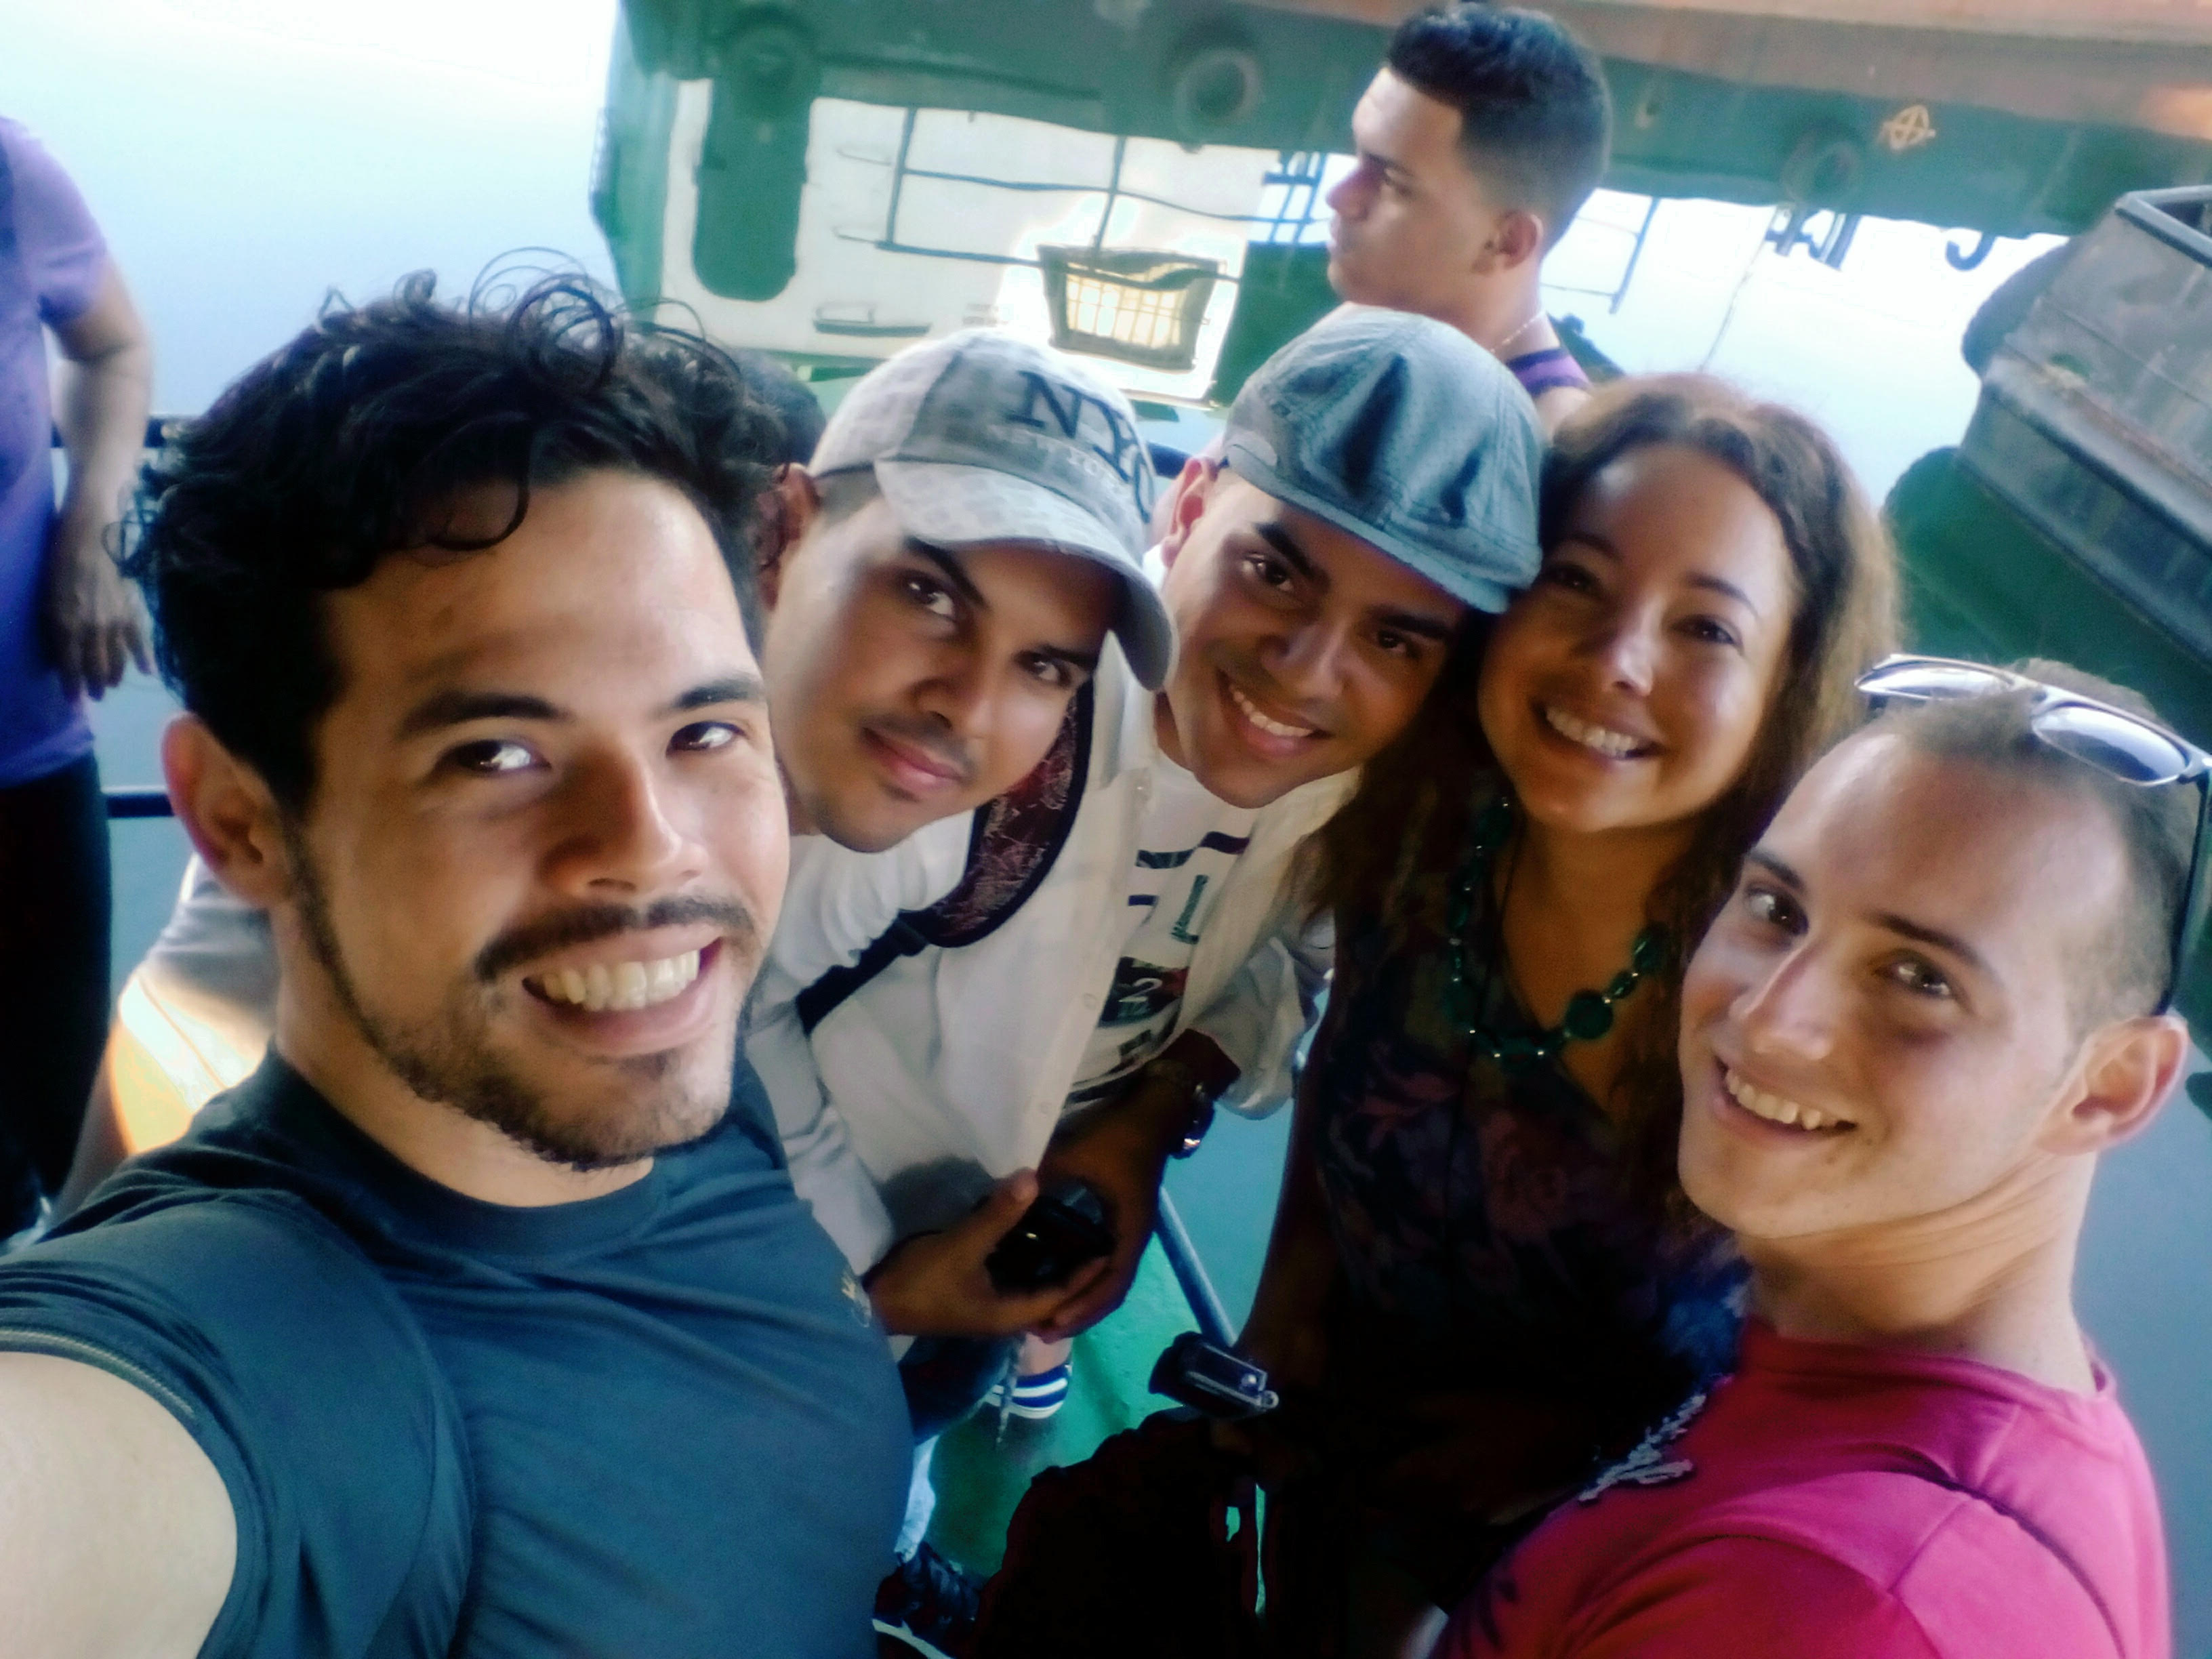 Five life-lessons I've learned from Cubans